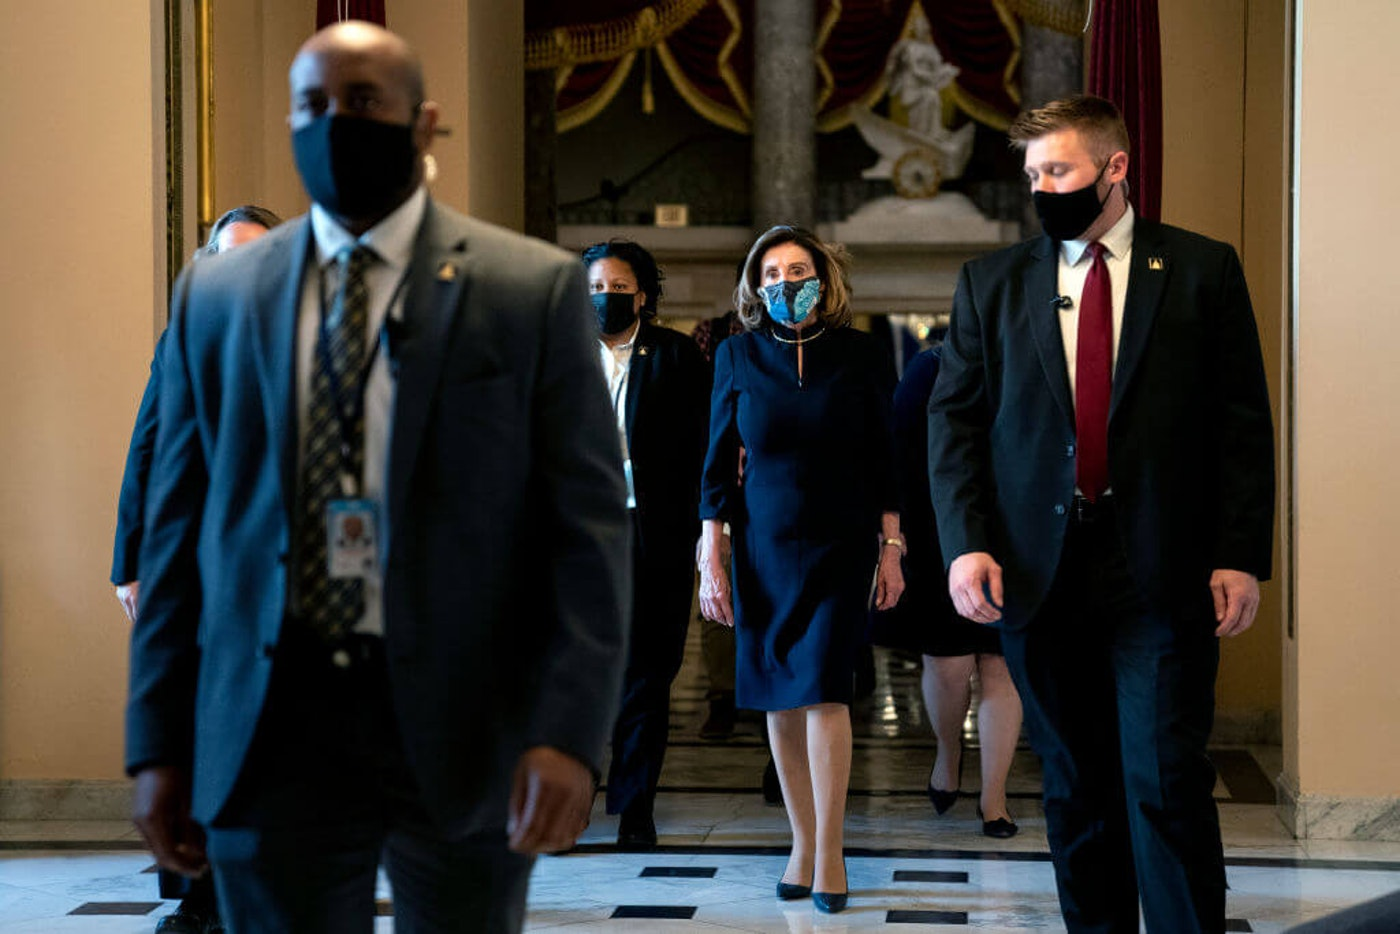 WASHINGTON, DC - JANUARY 13: Speaker of the House Nancy Pelosi (D-CA) (C) wears a protective mask while walking to the House Floor during a vote on the impeachment of President Donald Trump at the U.S. Capitol on January 13, 2021 in Washington, DC. The House of Representatives moved forward with impeachment following Vice President Mike Pences refusal to use the 25th amendment to remove Trump from office after protestors breached the U.S. Capitol last week. (Photo by Stefani Reynolds/Getty Images)